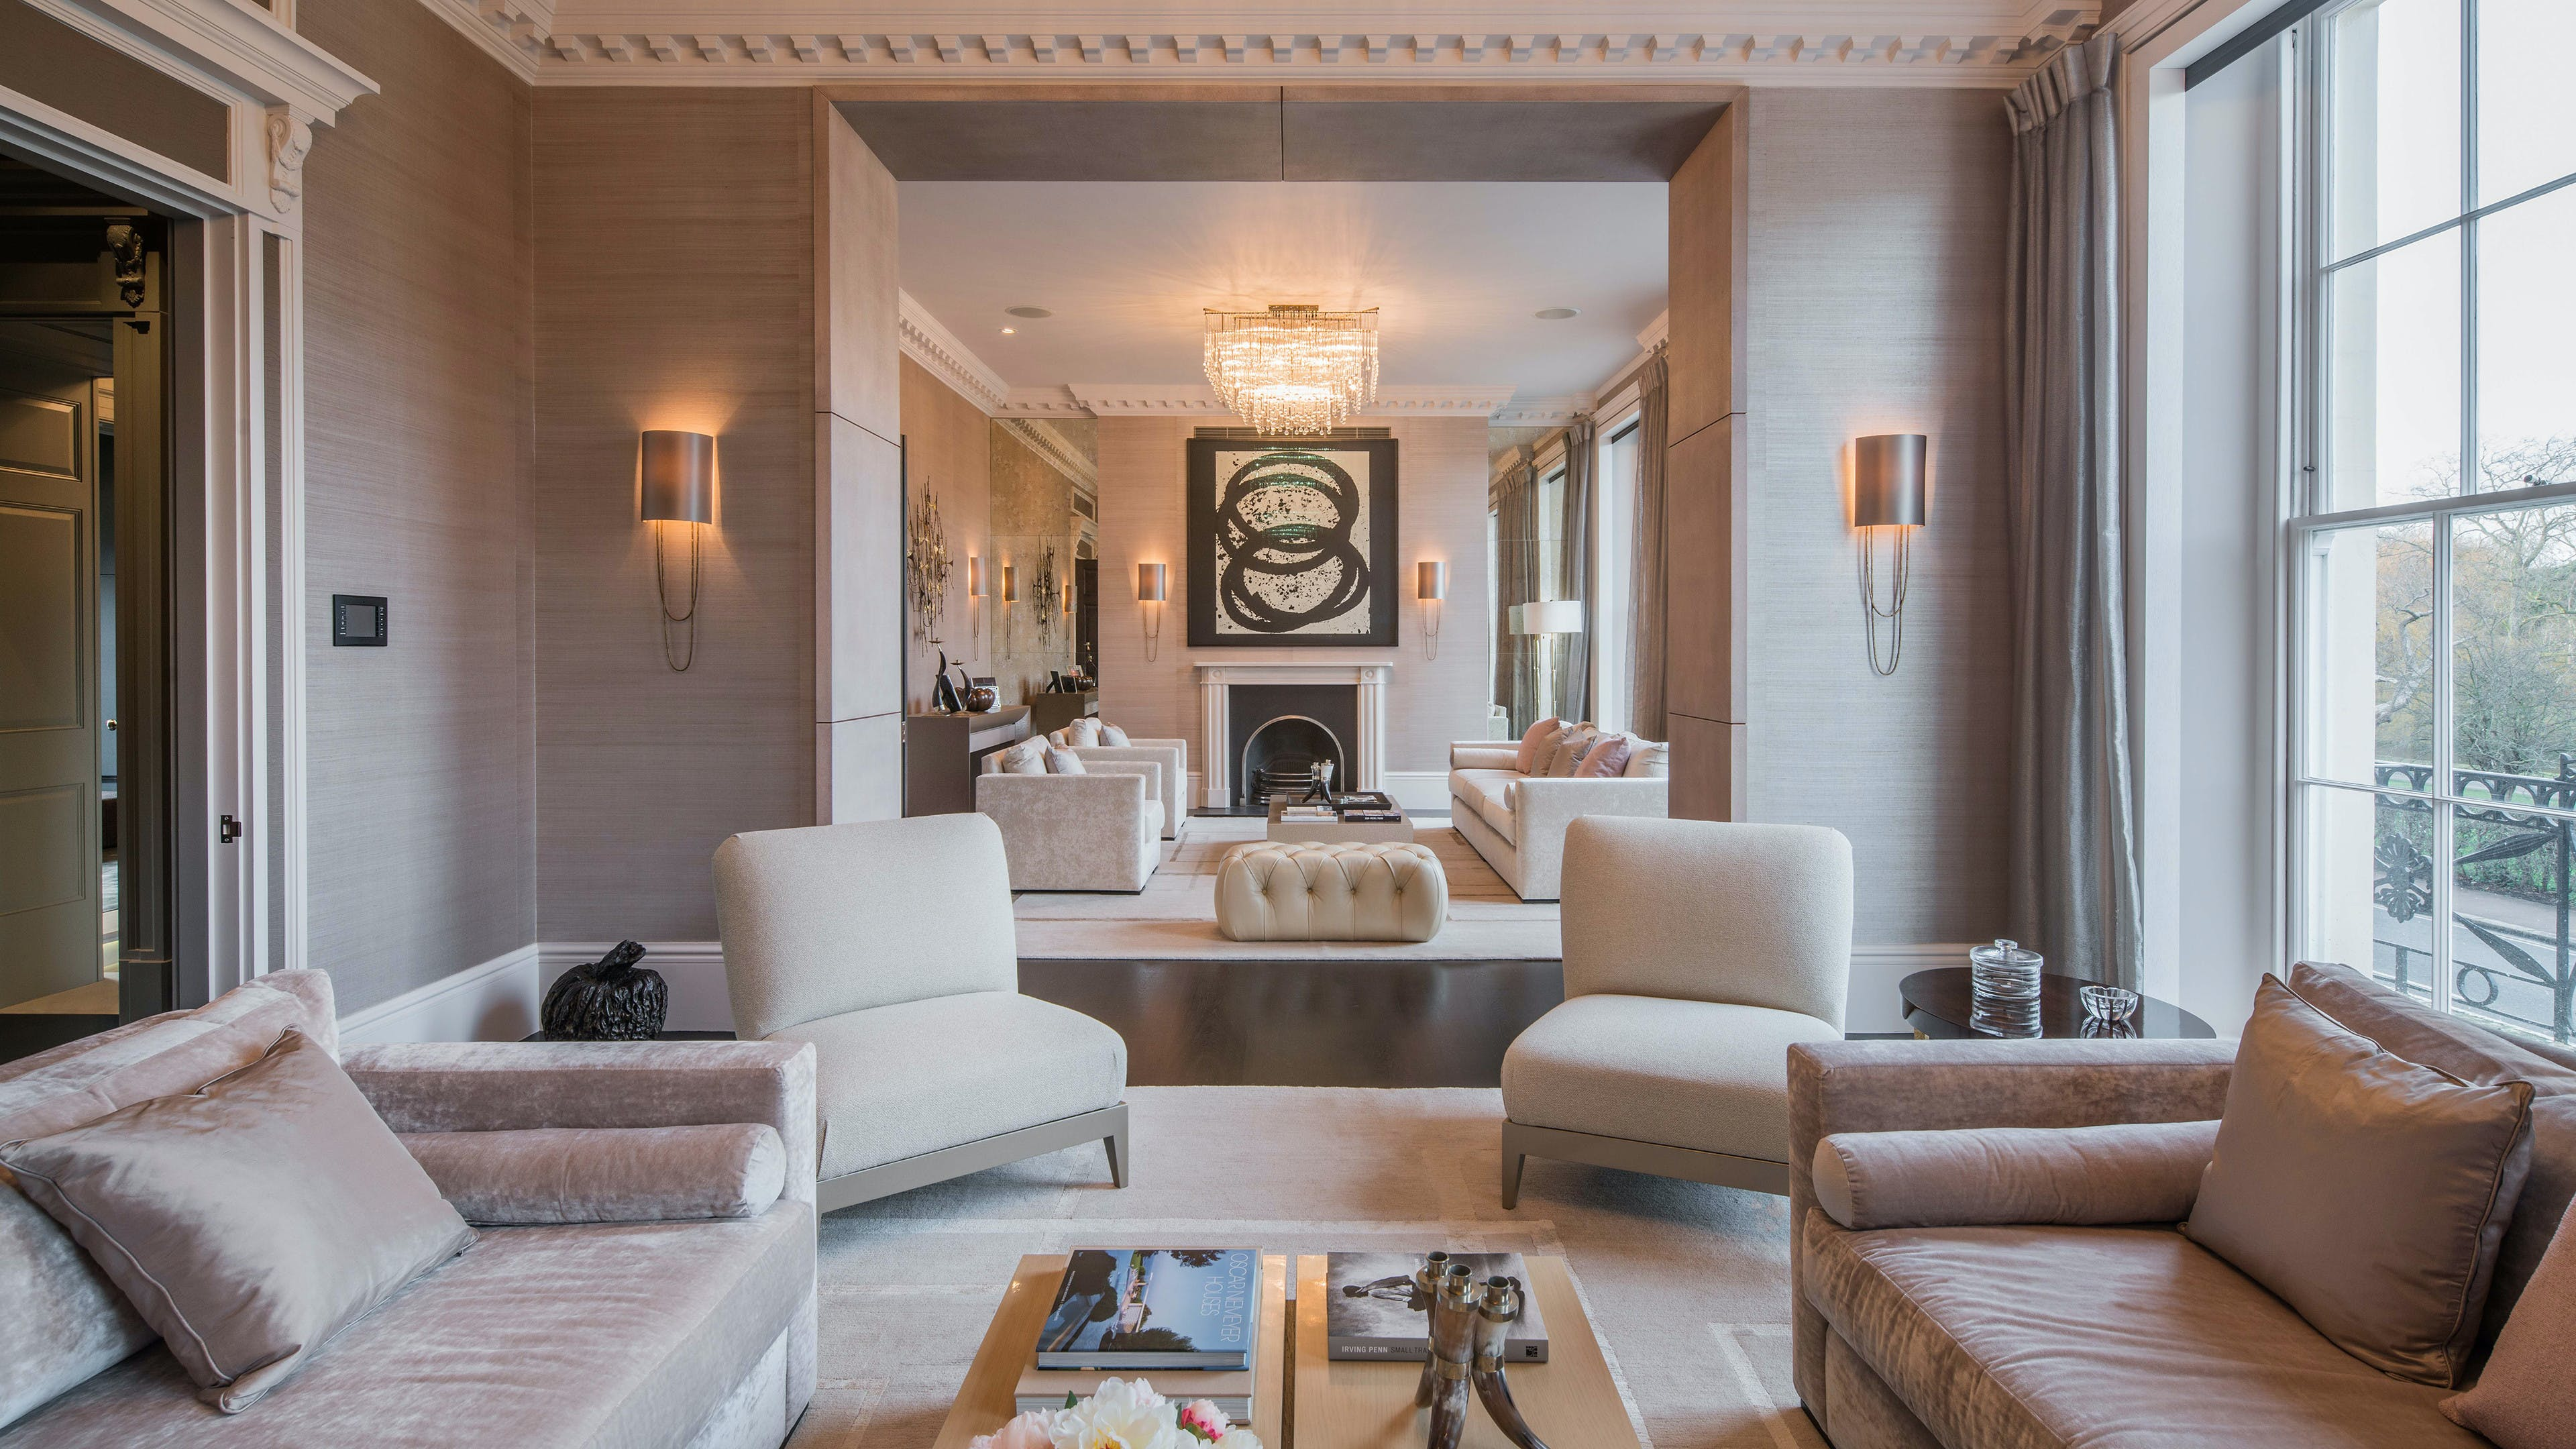 Cornwall Terrace, Regents Park -  - New York City Townhouse Real Estate